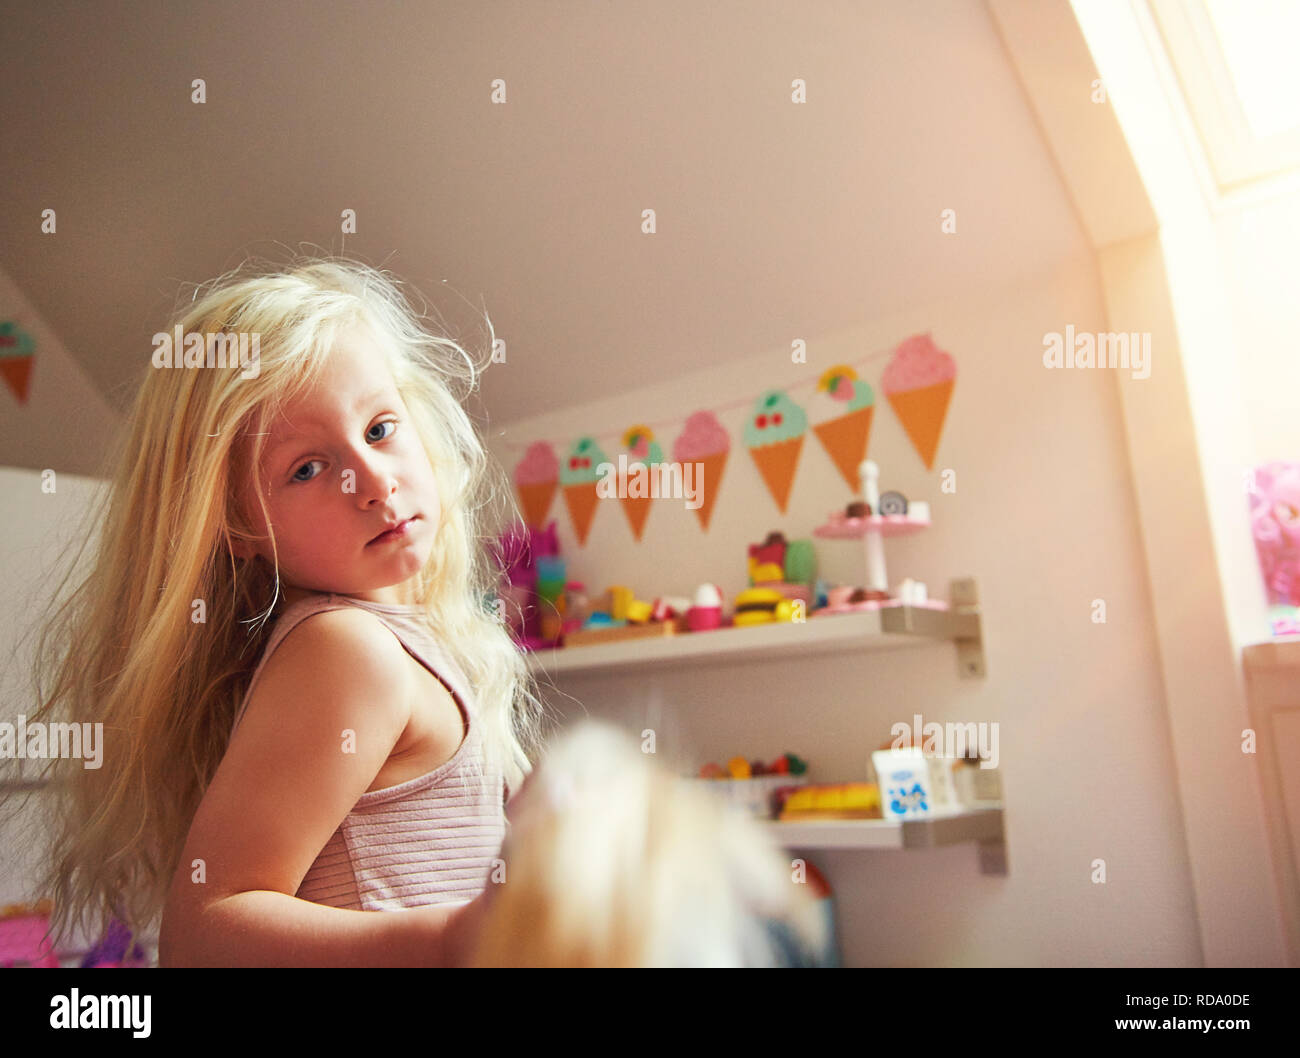 6c1d4a7e218cae Cute little girl holding a toy and looking at camera. Horizontal indoors  shot. -